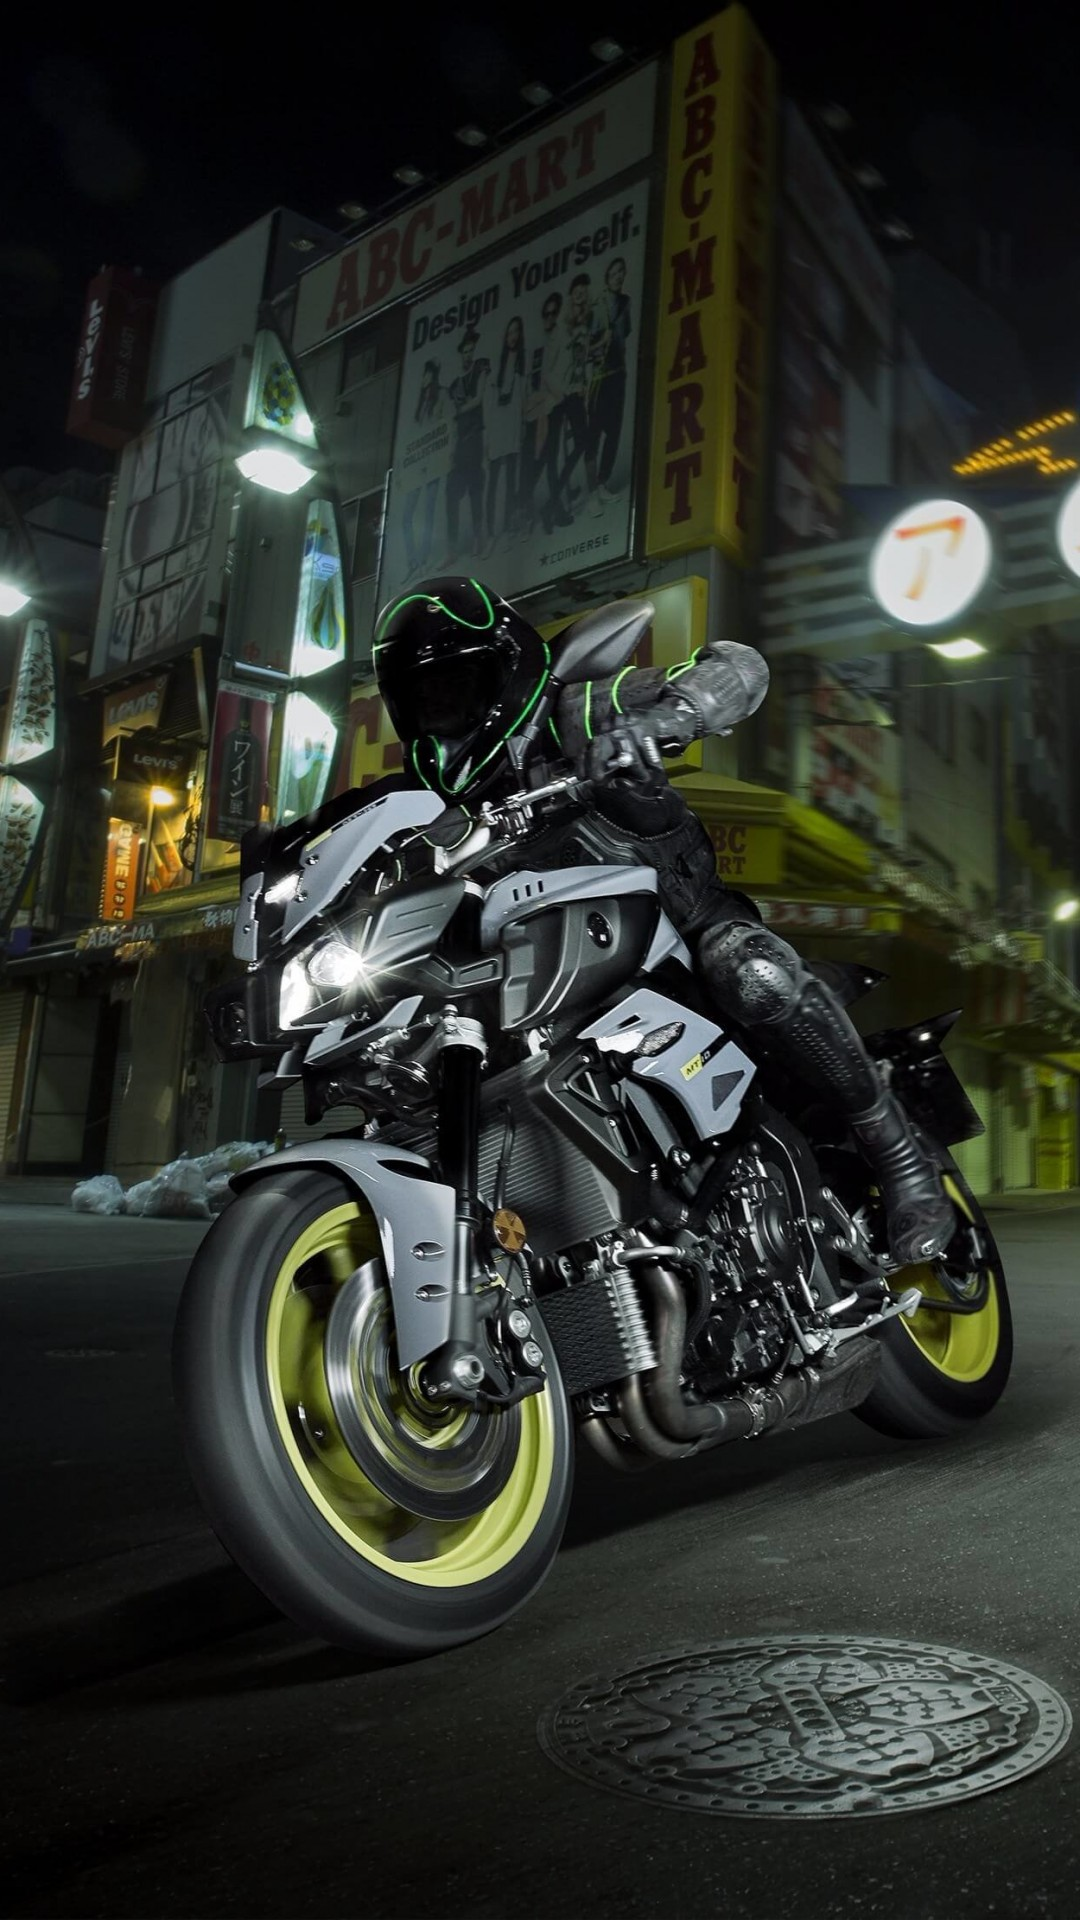 Yamaha MT-10 Superbike Wallpaper for SAMSUNG Galaxy S5